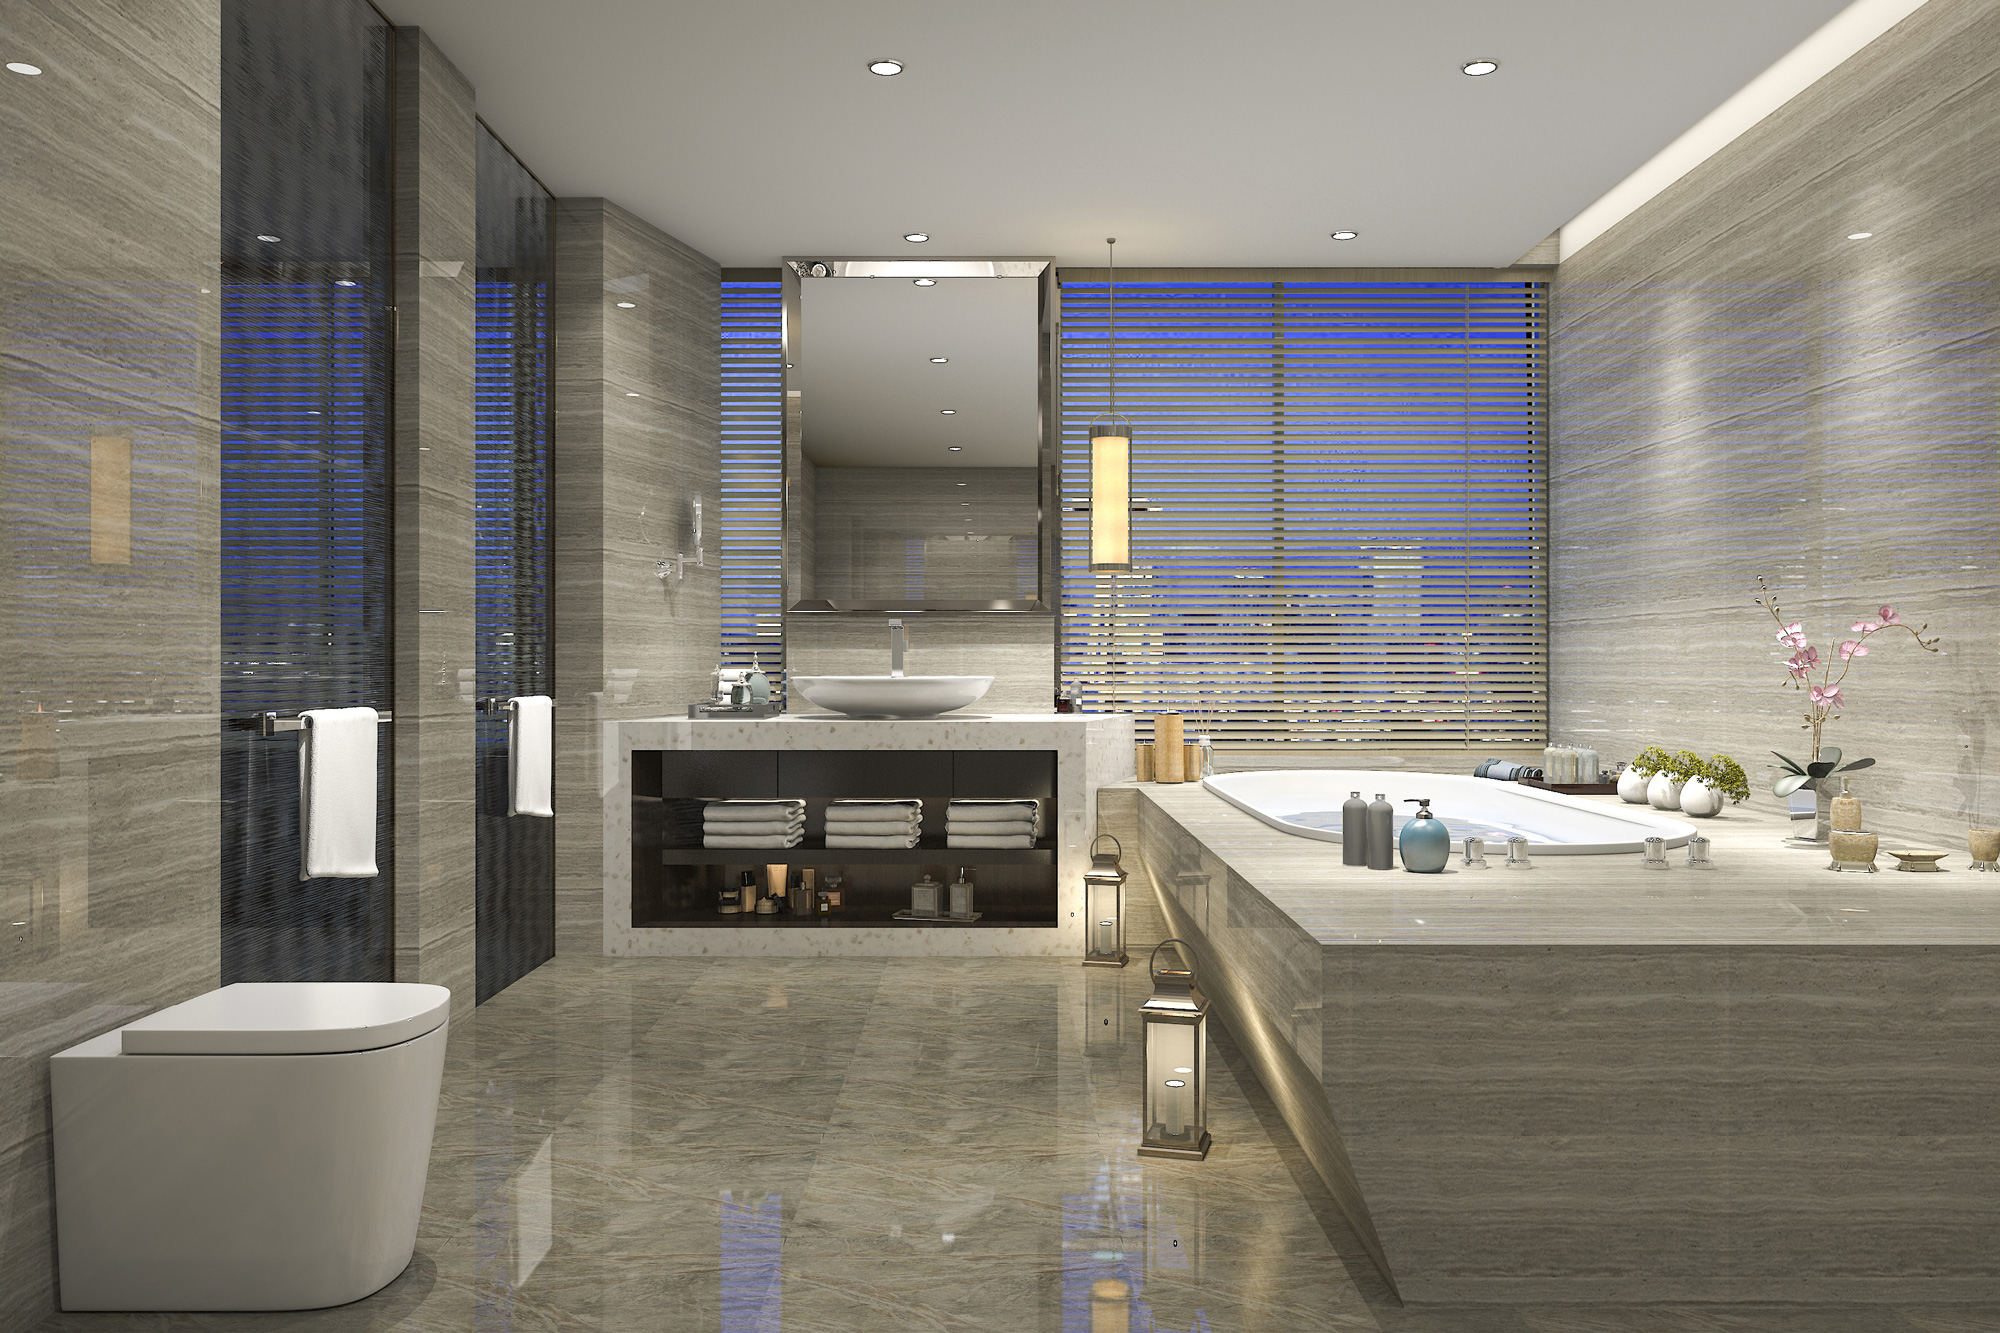 Bathroom Construction and Remodeling in Miami, FL